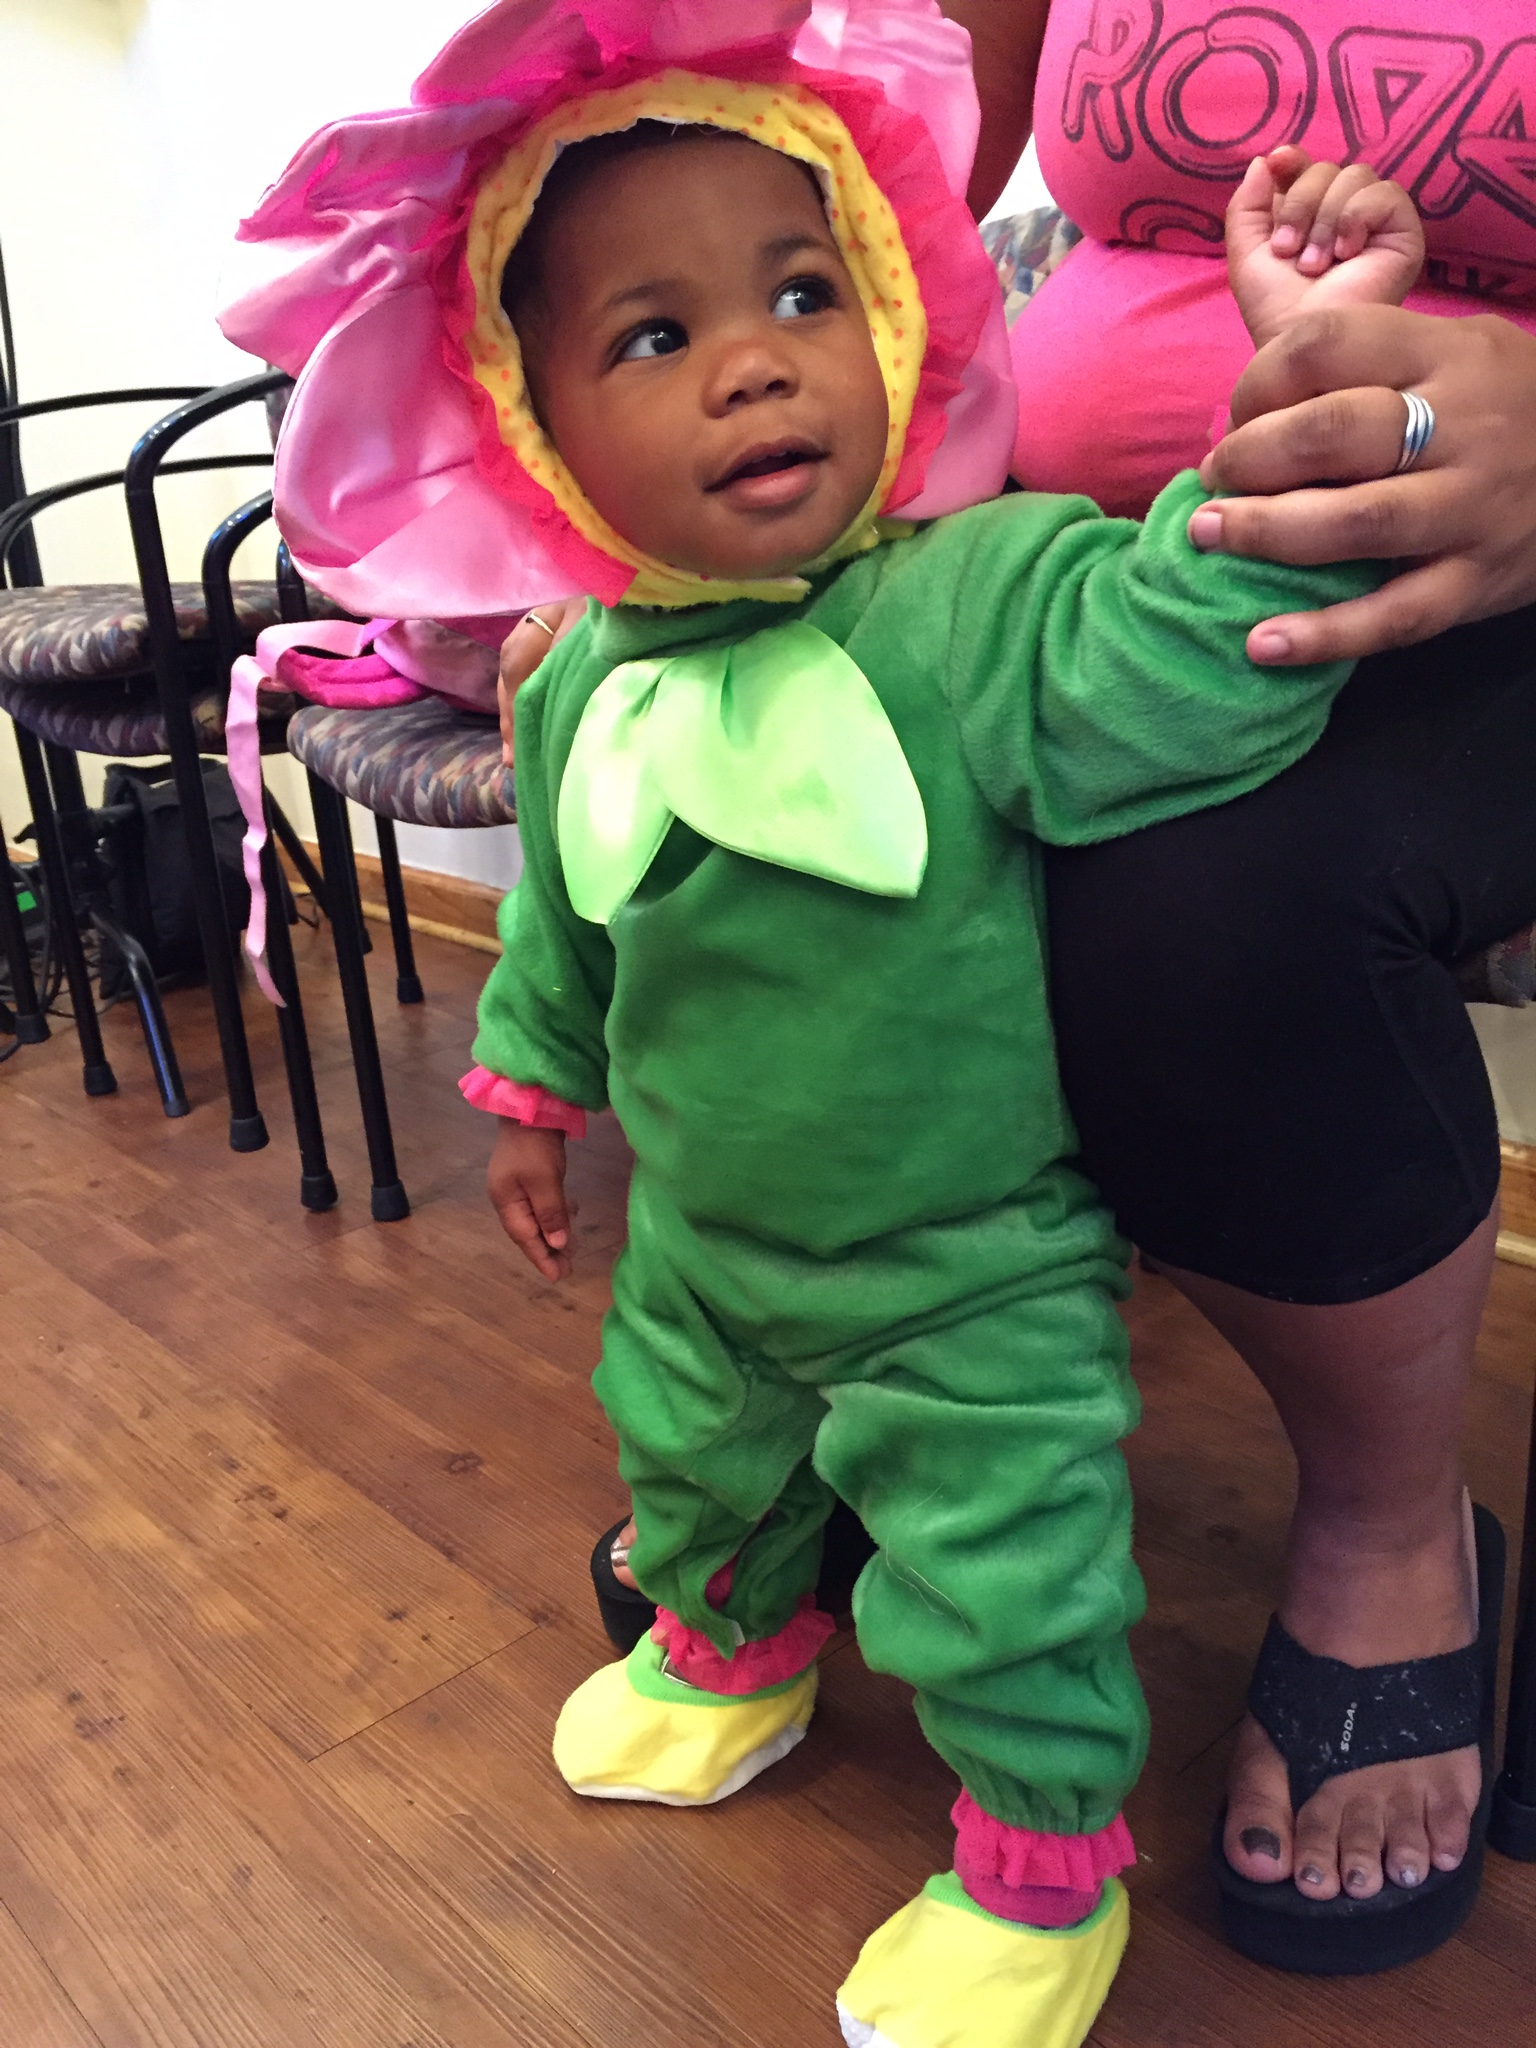 an adorable 'WEENSTER at Covenant House New Orleans on October 21, 2015